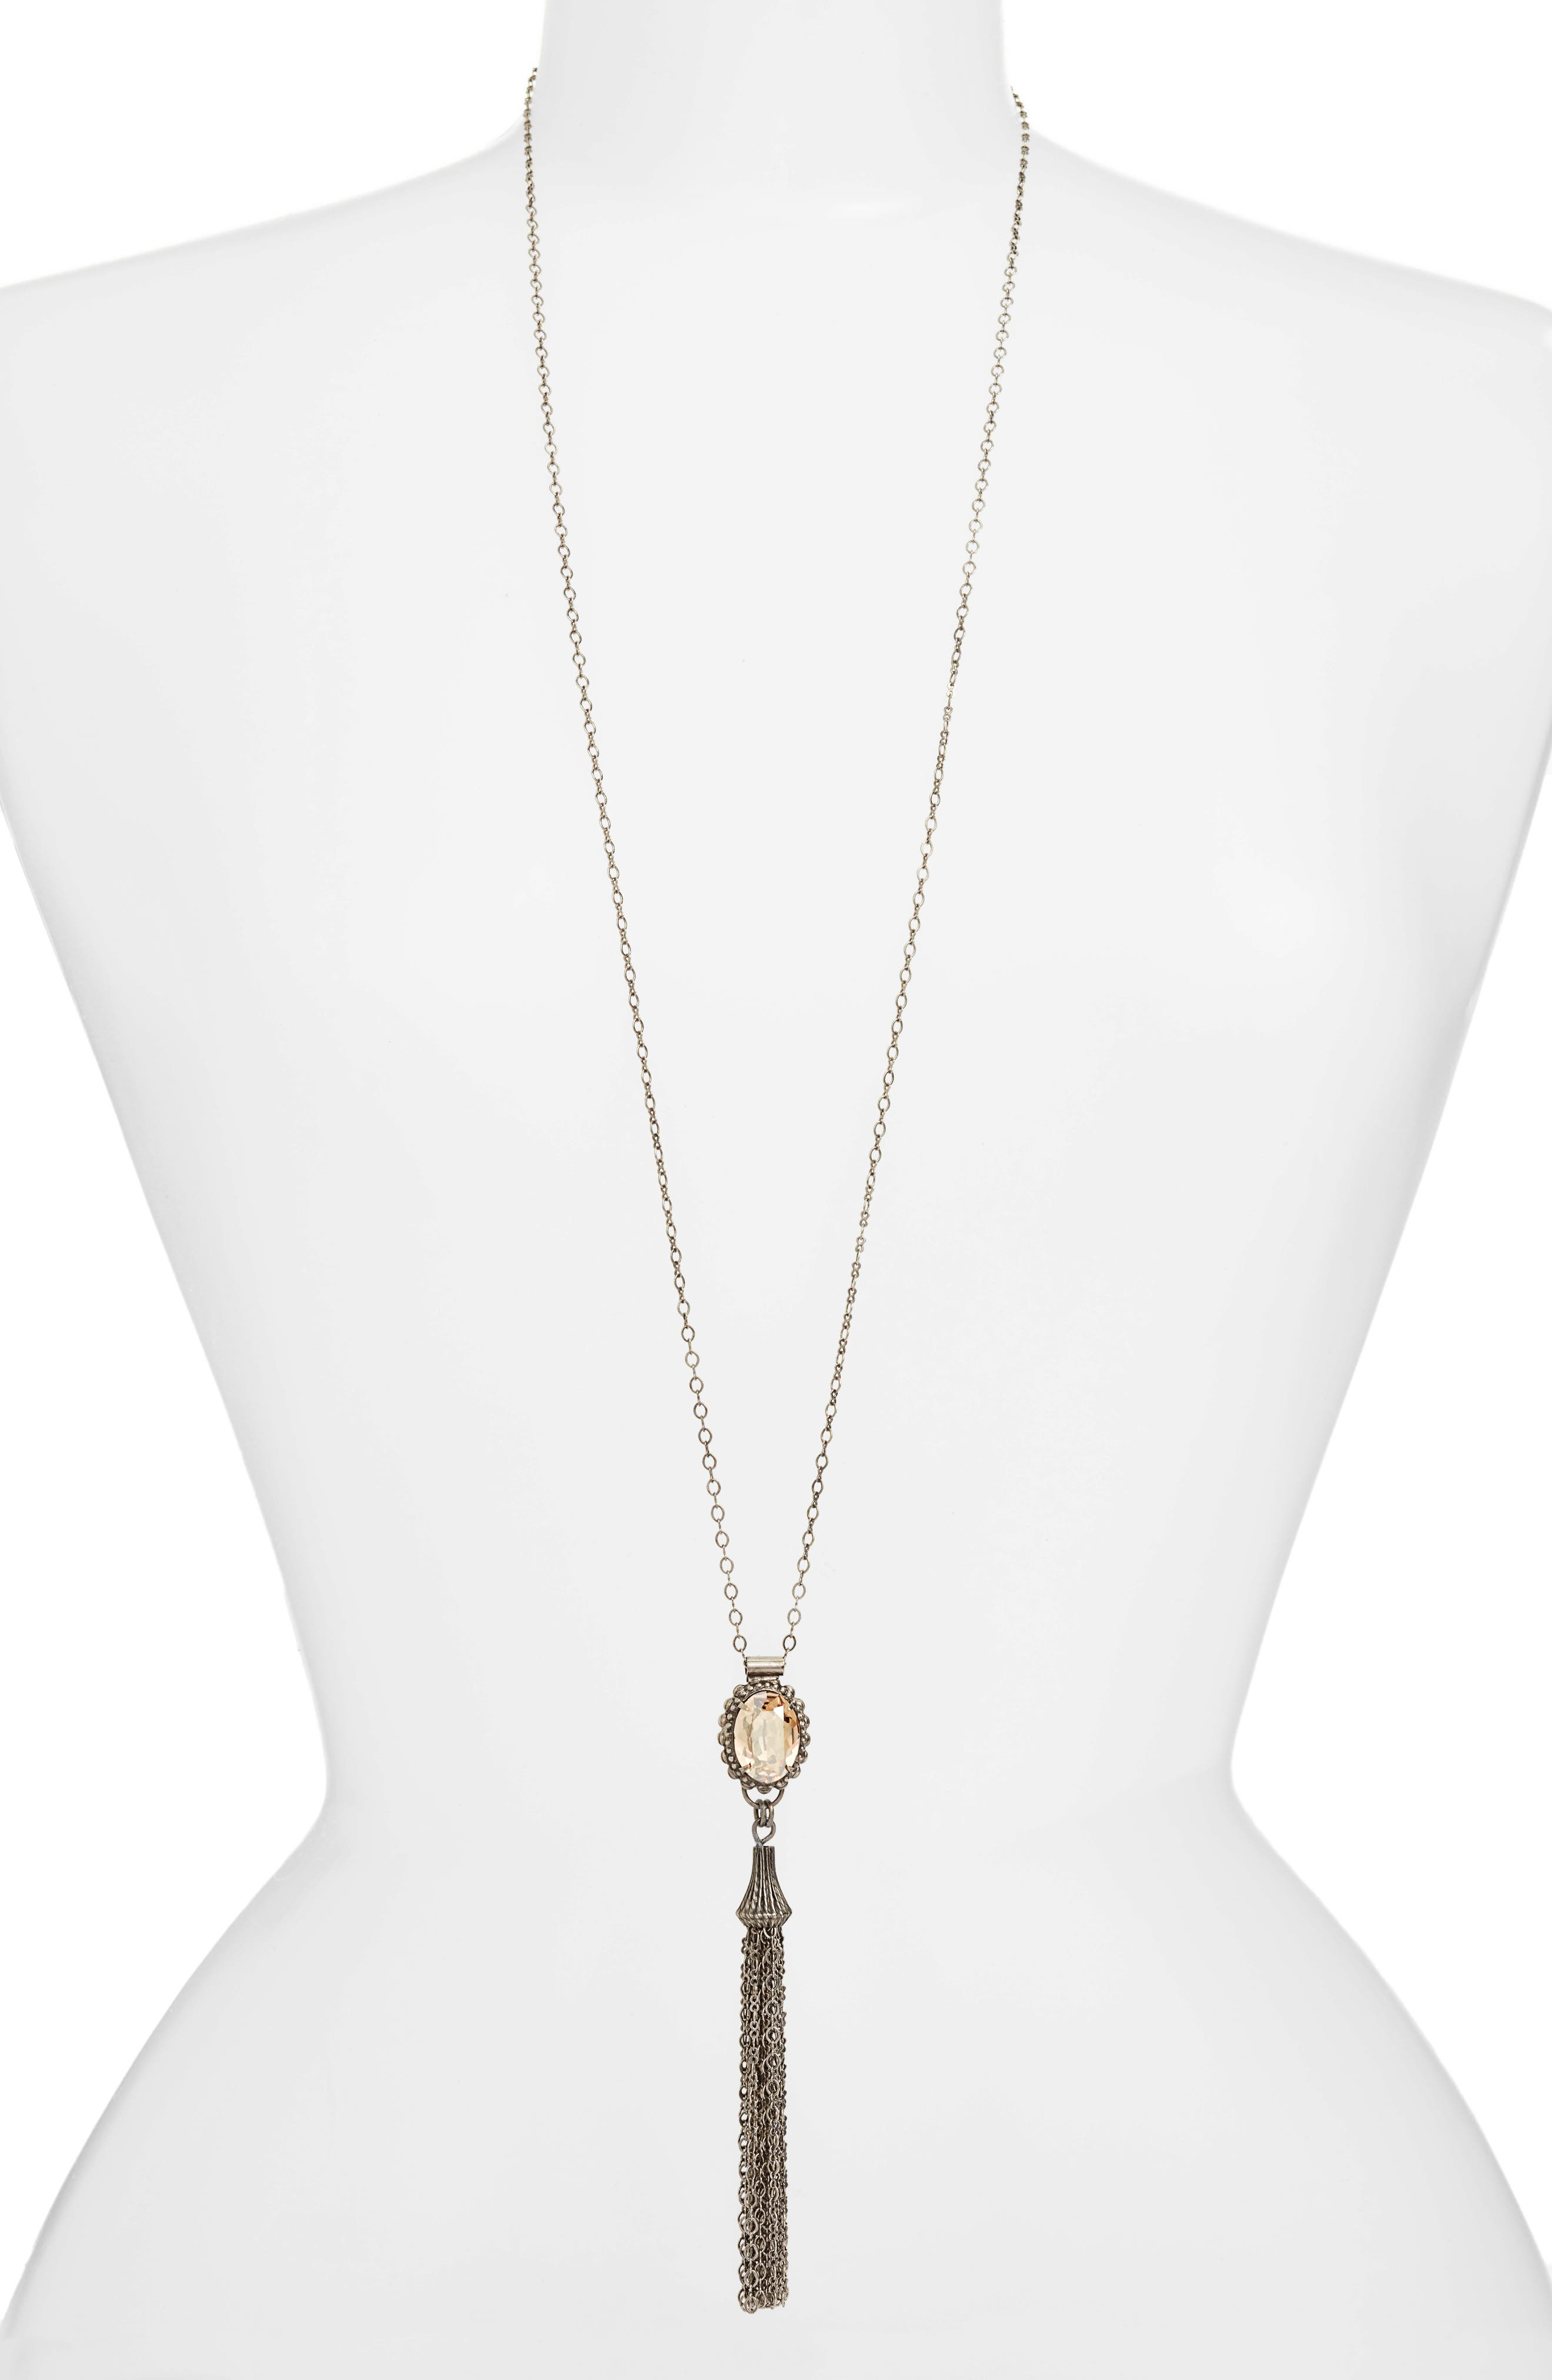 Camellia Tassel Pendant Necklace,                         Main,                         color, Tan